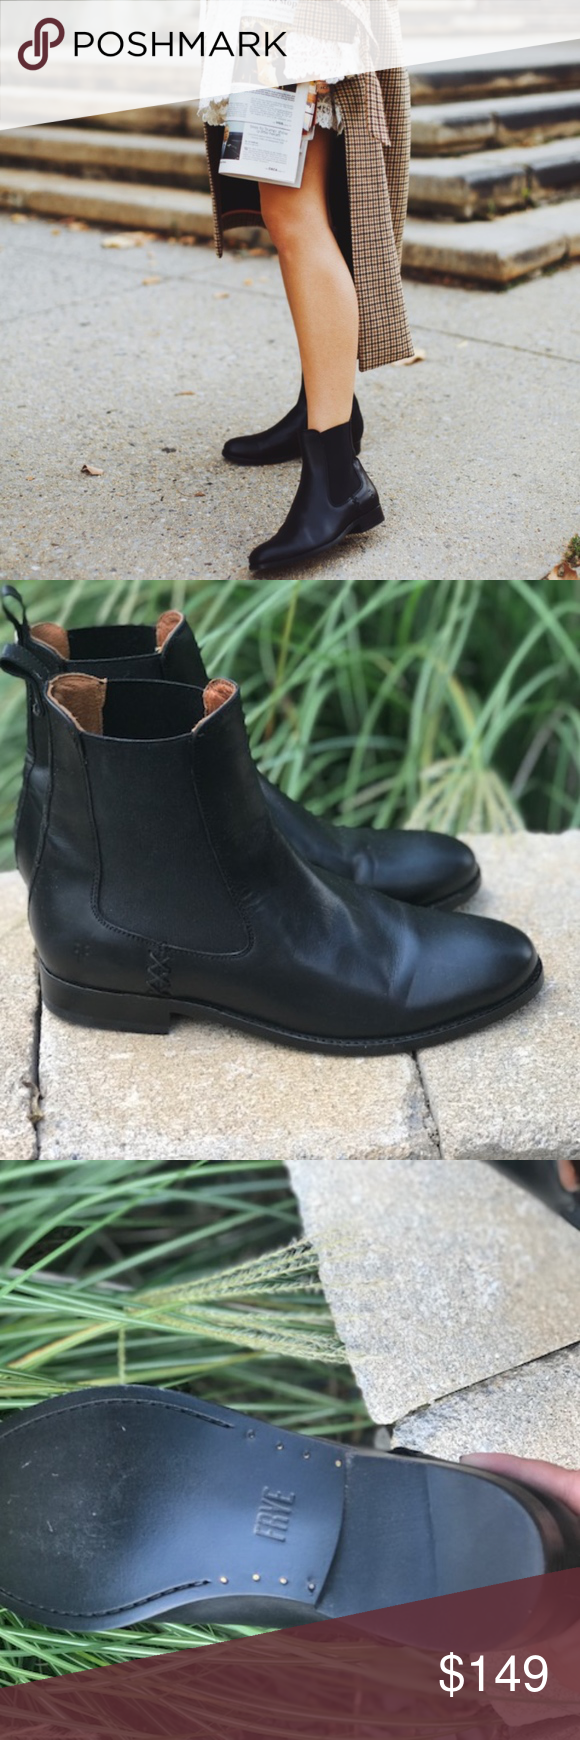 a49357f65f1 Frye melissa chelsea ankle boots new no box Measurements: Heel ...